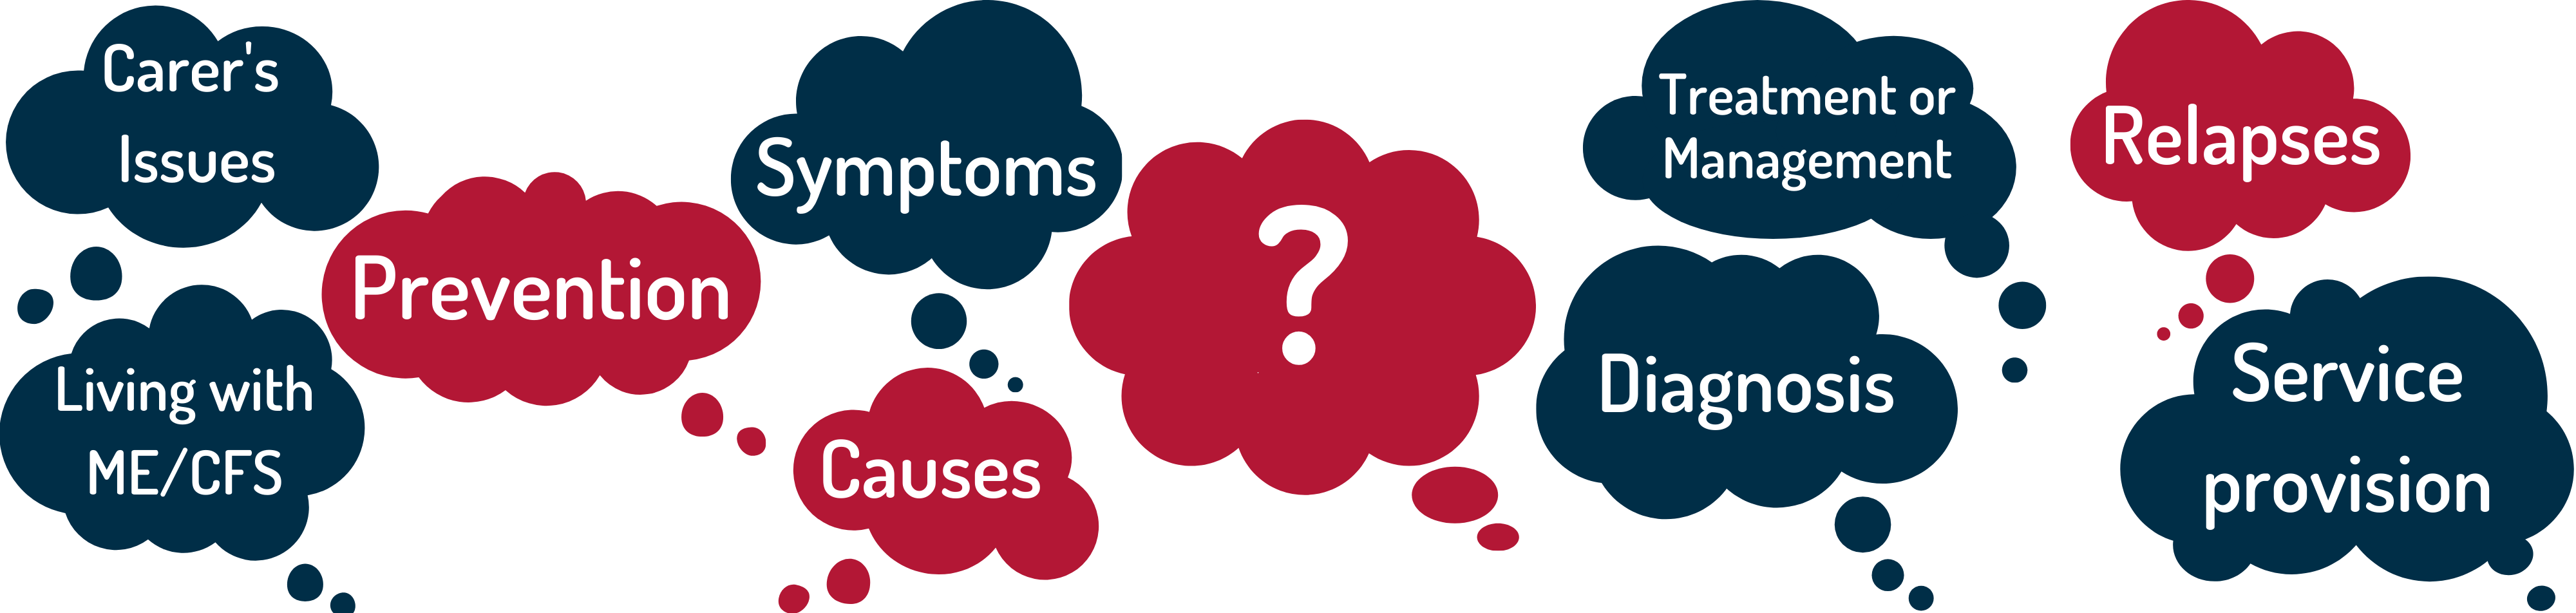 List of possible themes that you may have questions about:  Carer's issues. Living with ME/CFS, Prevention, Symptoms, Causes, Treatment of Management, Diagnosis, Relapses, Service provision, or anything else you have a question or comment about